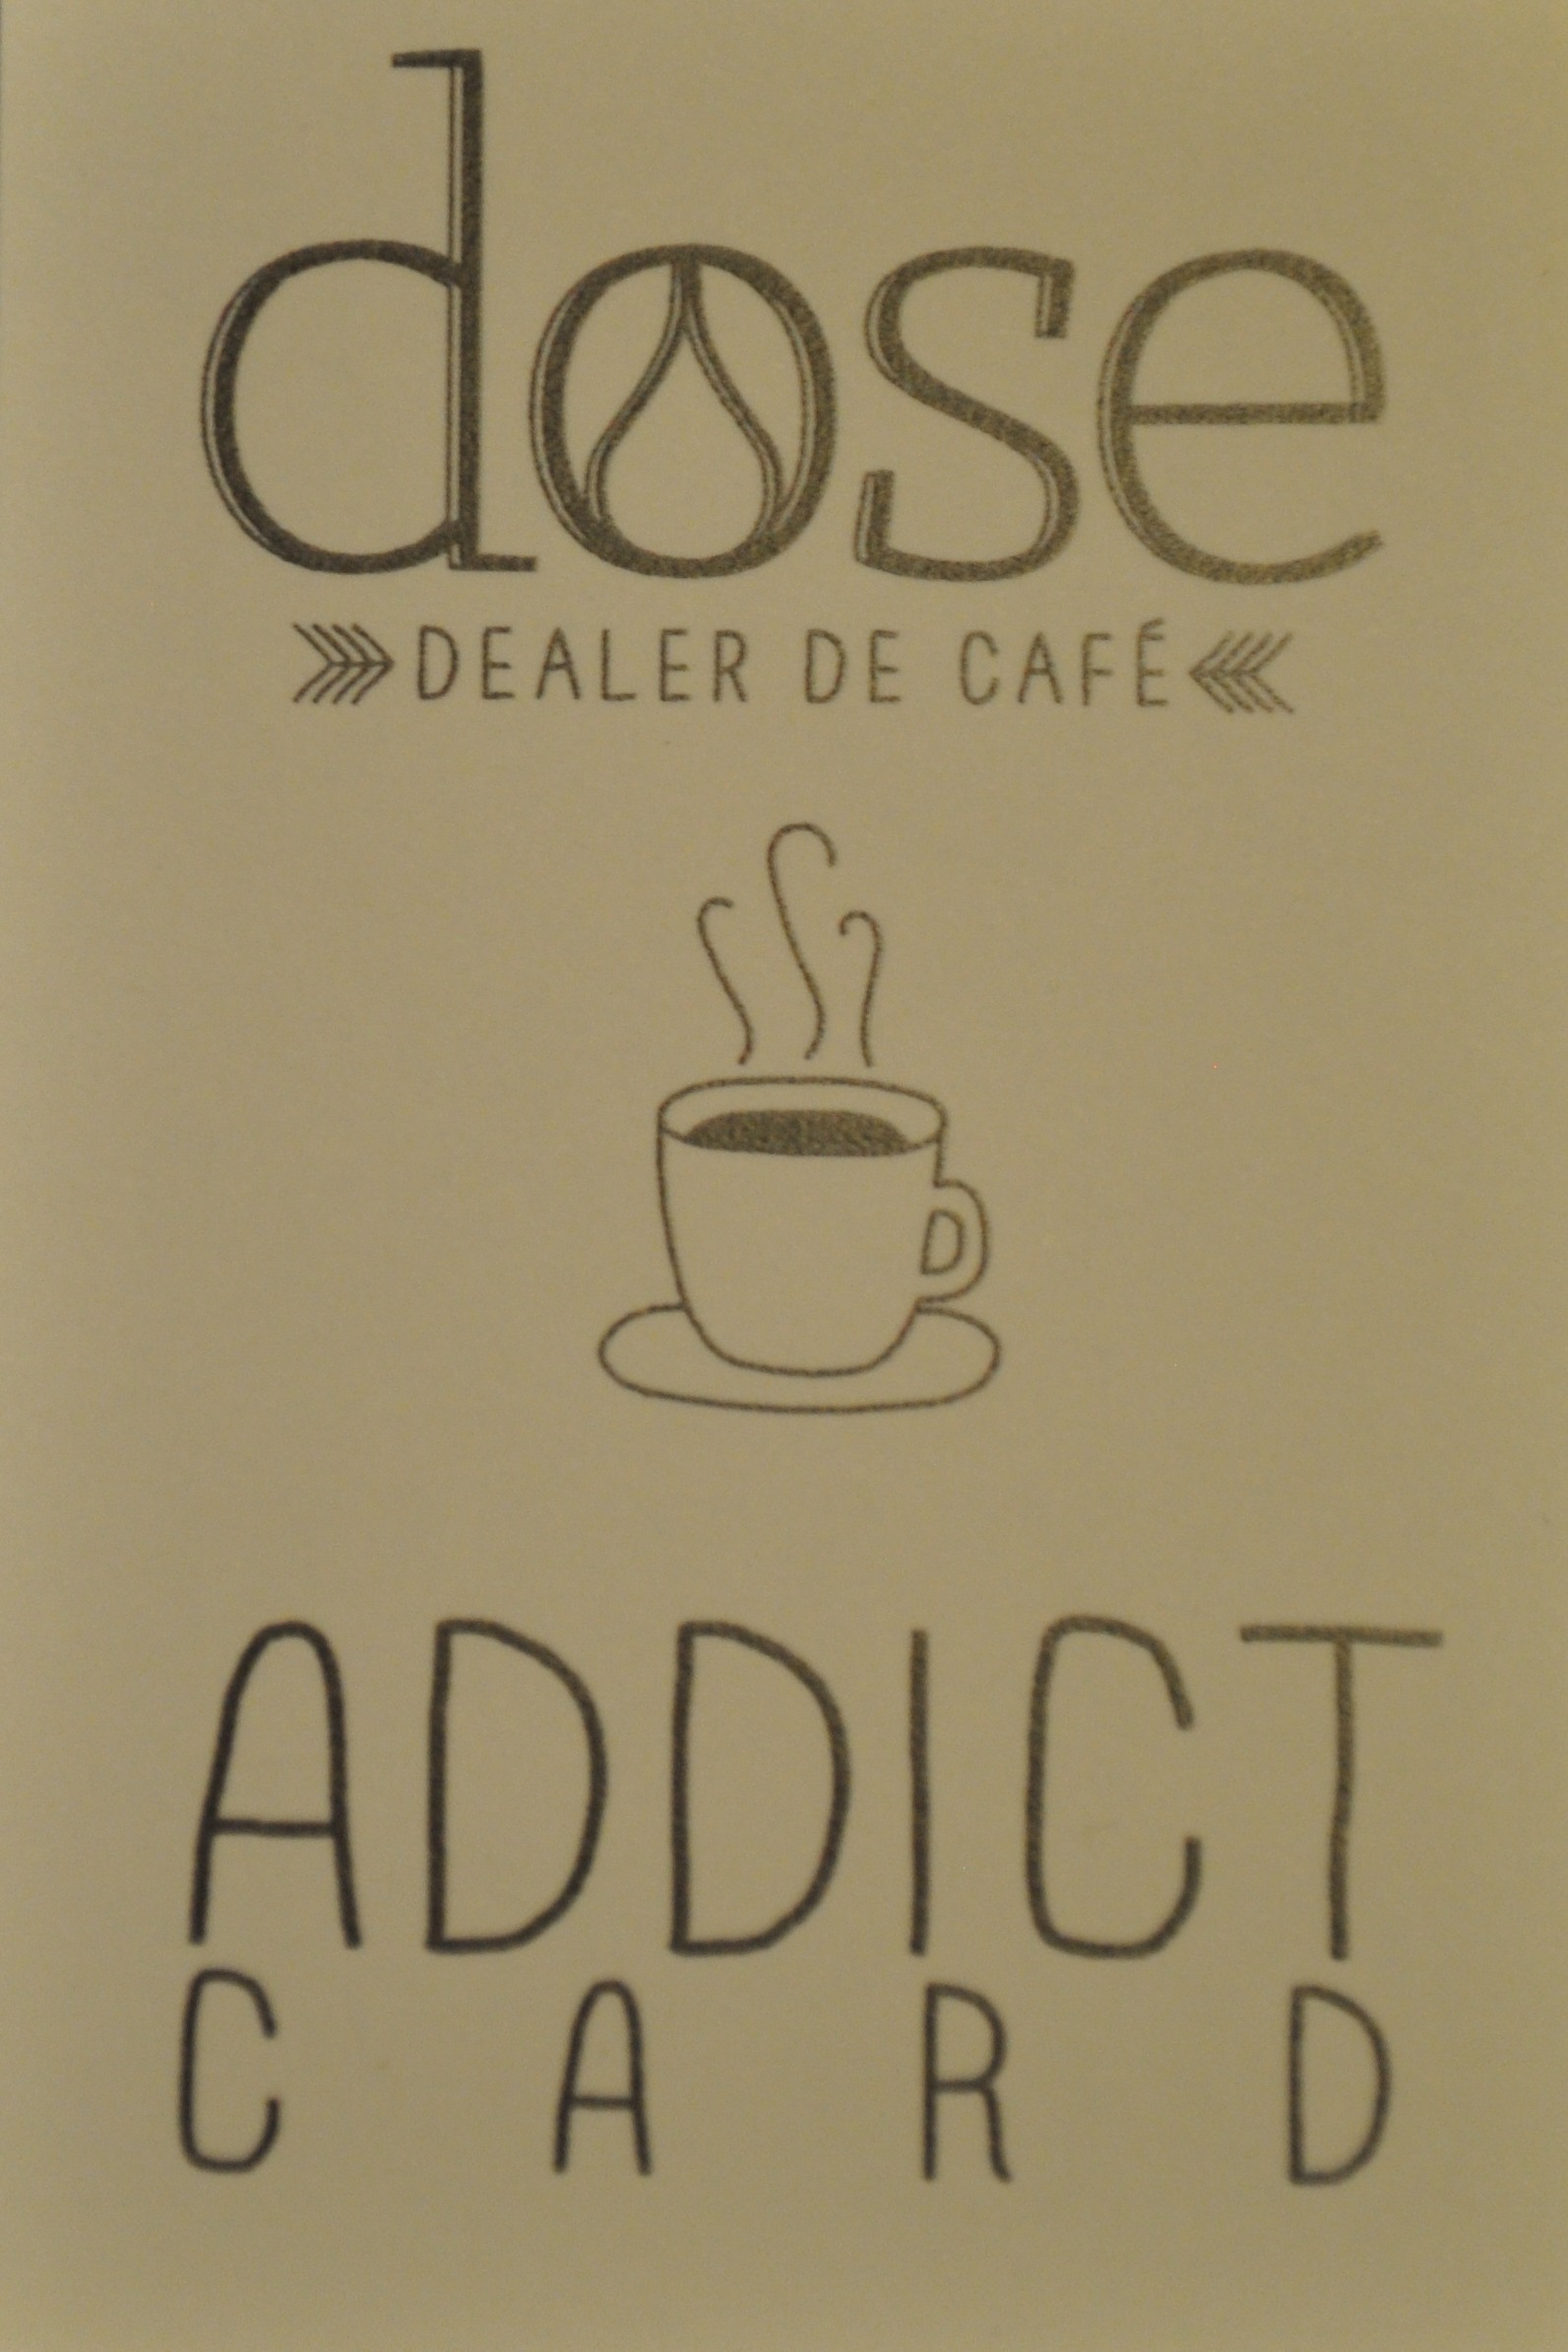 "The loyalty card for Parisian cafe Dose, Dealer de Cafe: an ""Addict Card""."